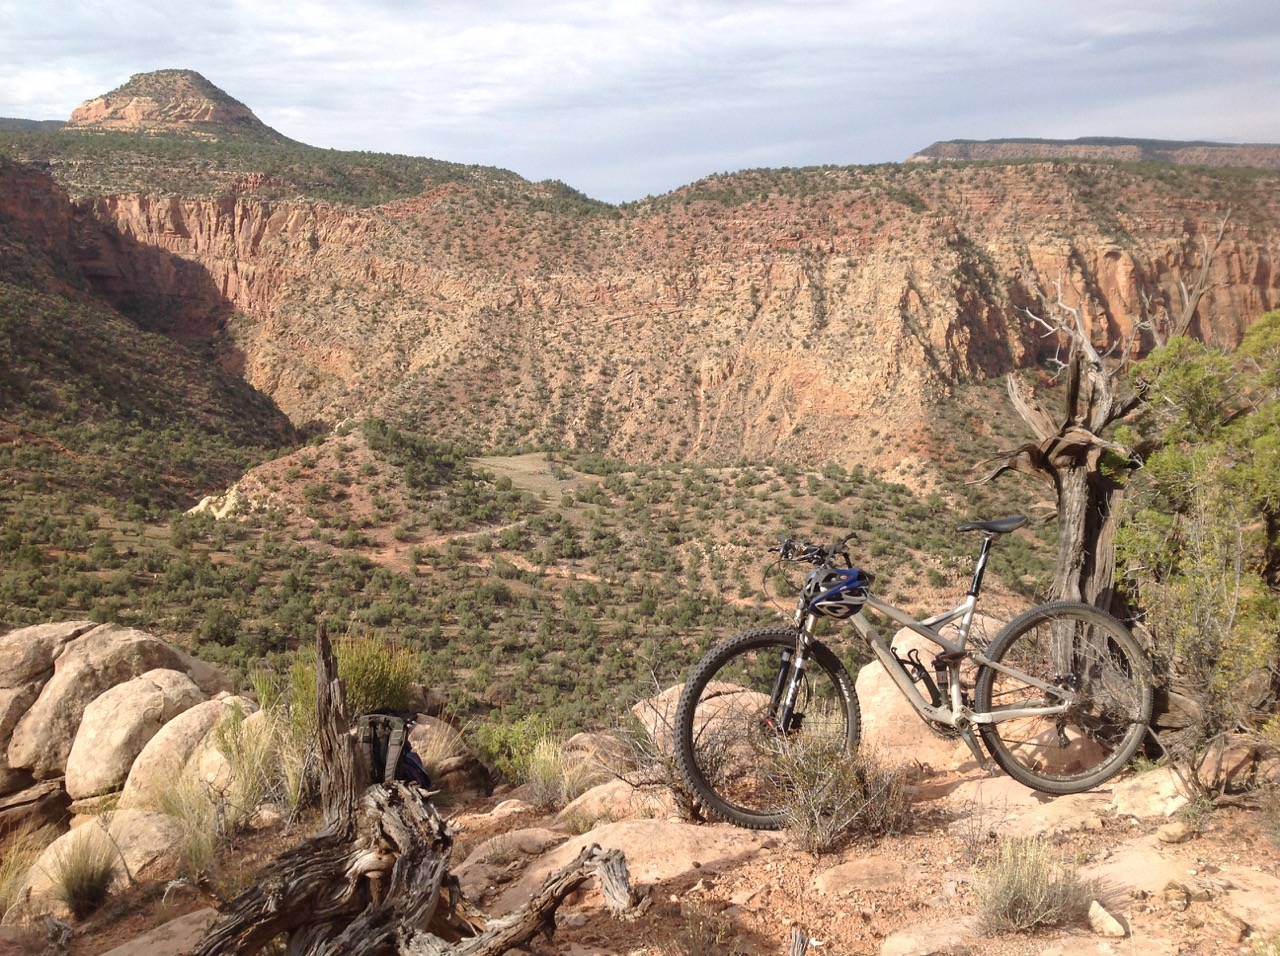 The Y-11 loop features some fun, fast, and technical singletrack. At times the trail clings tenuously to narrow benches high above the canyon floor.